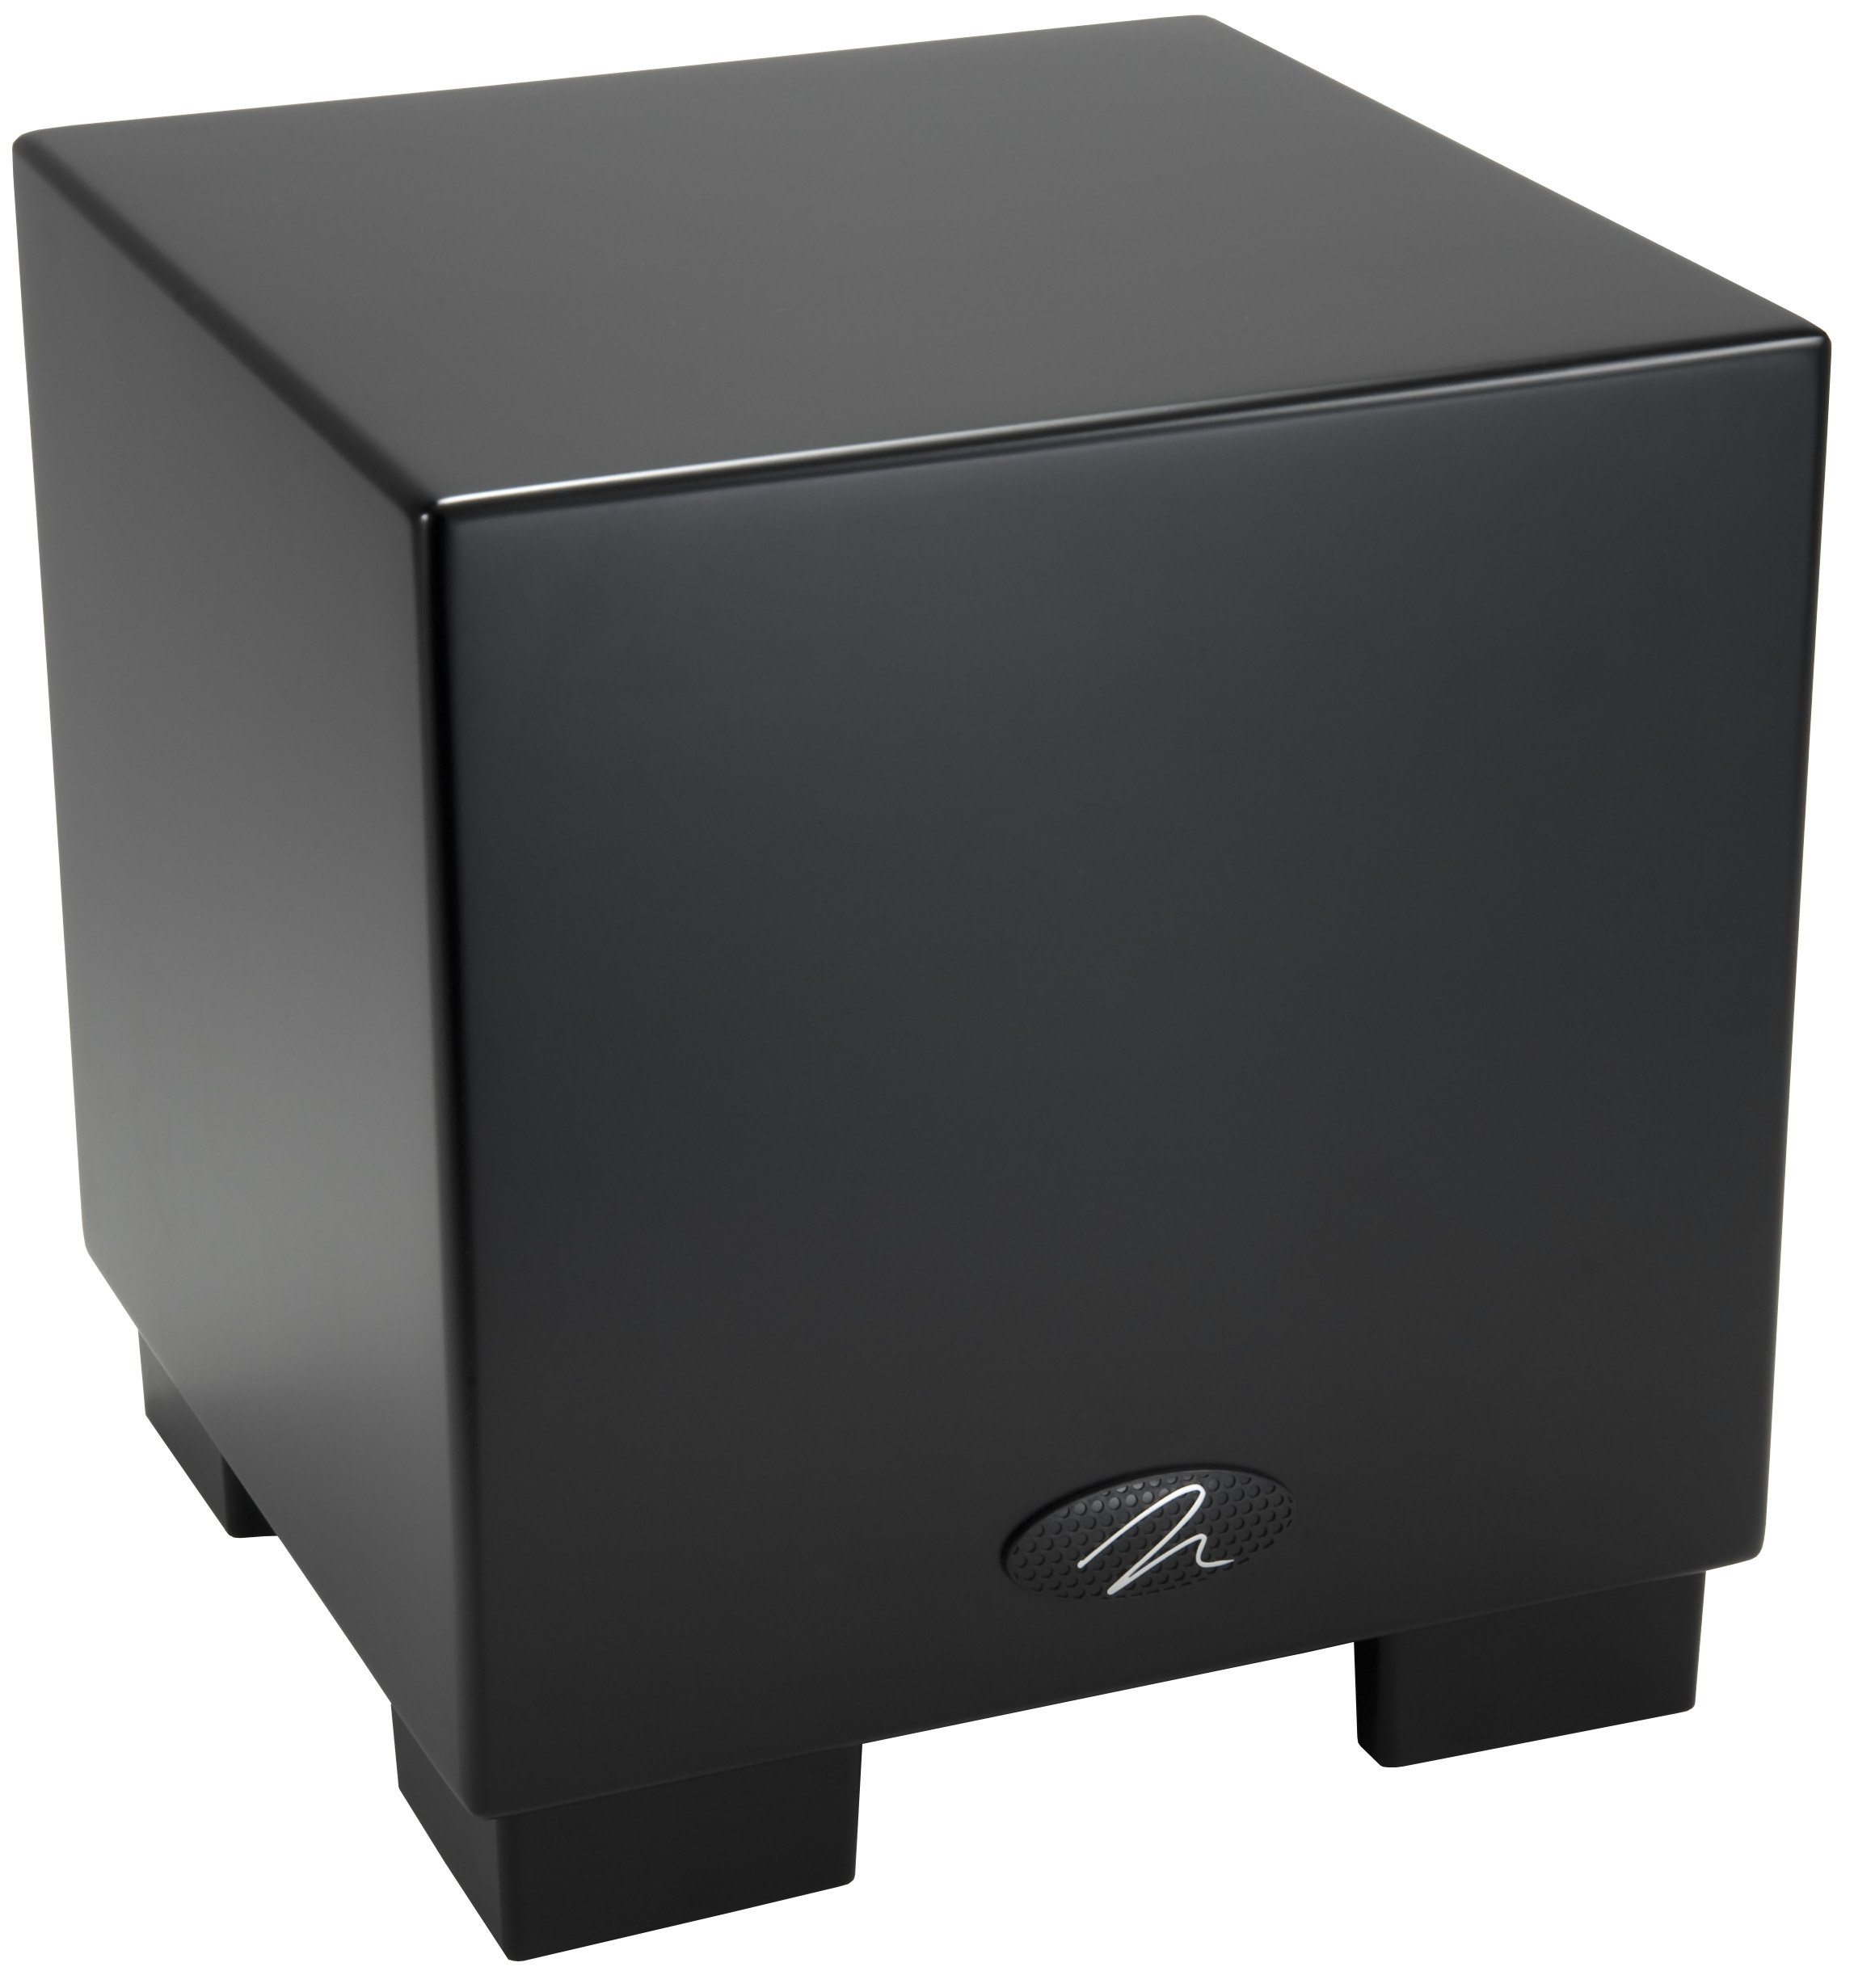 MartinLogan Dynamo 700W 10'' Subwoofer with Wireless (Black)